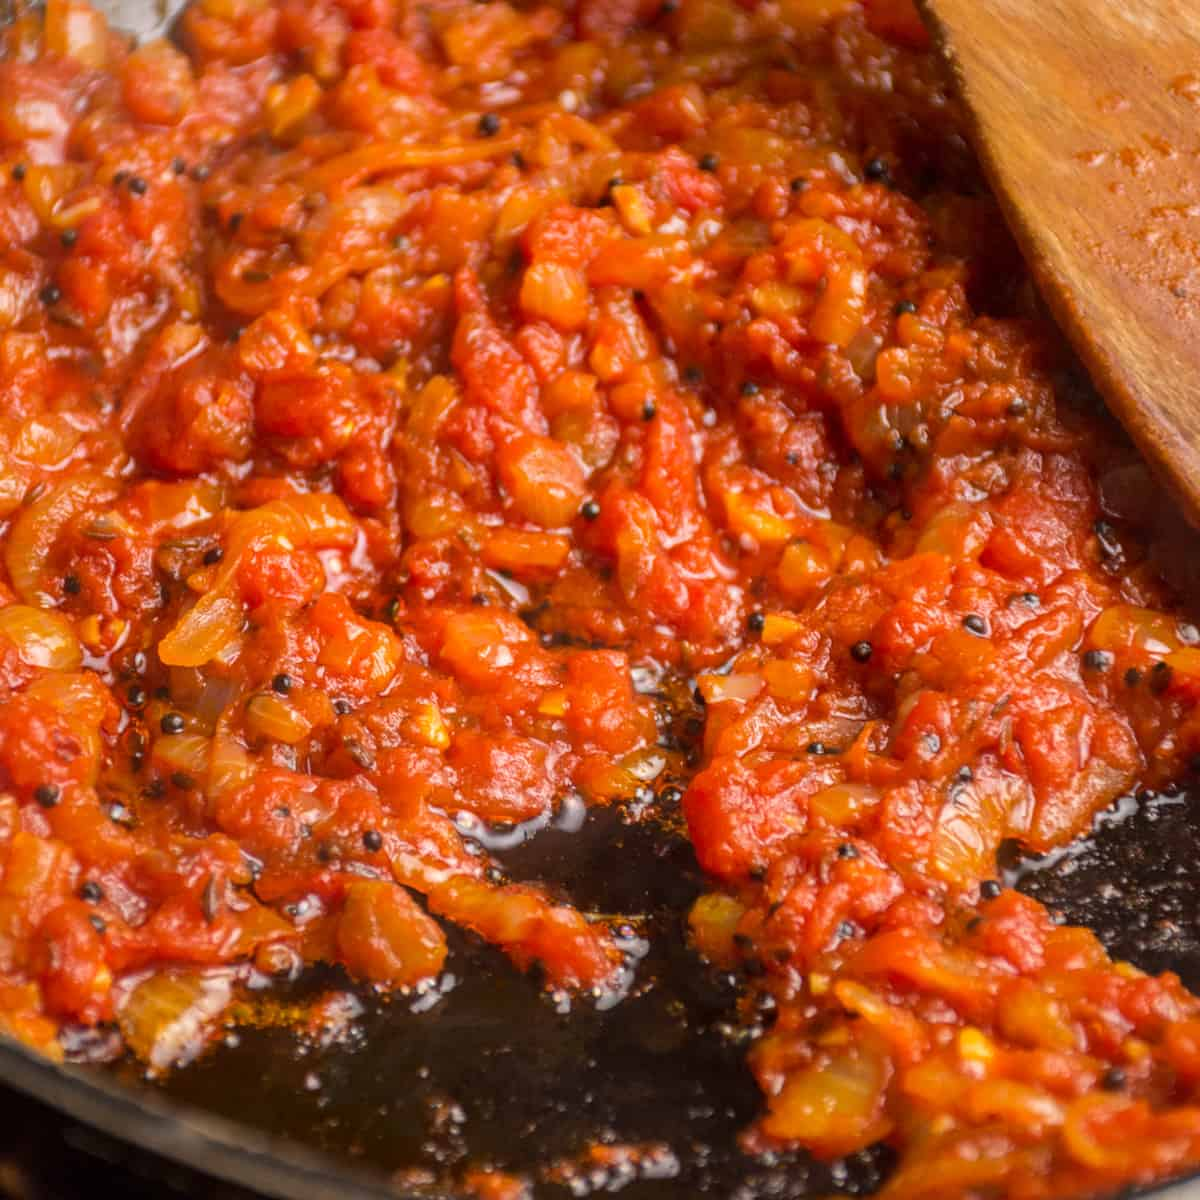 Chopped tomatoes are added to the onion and cooked until thickened.